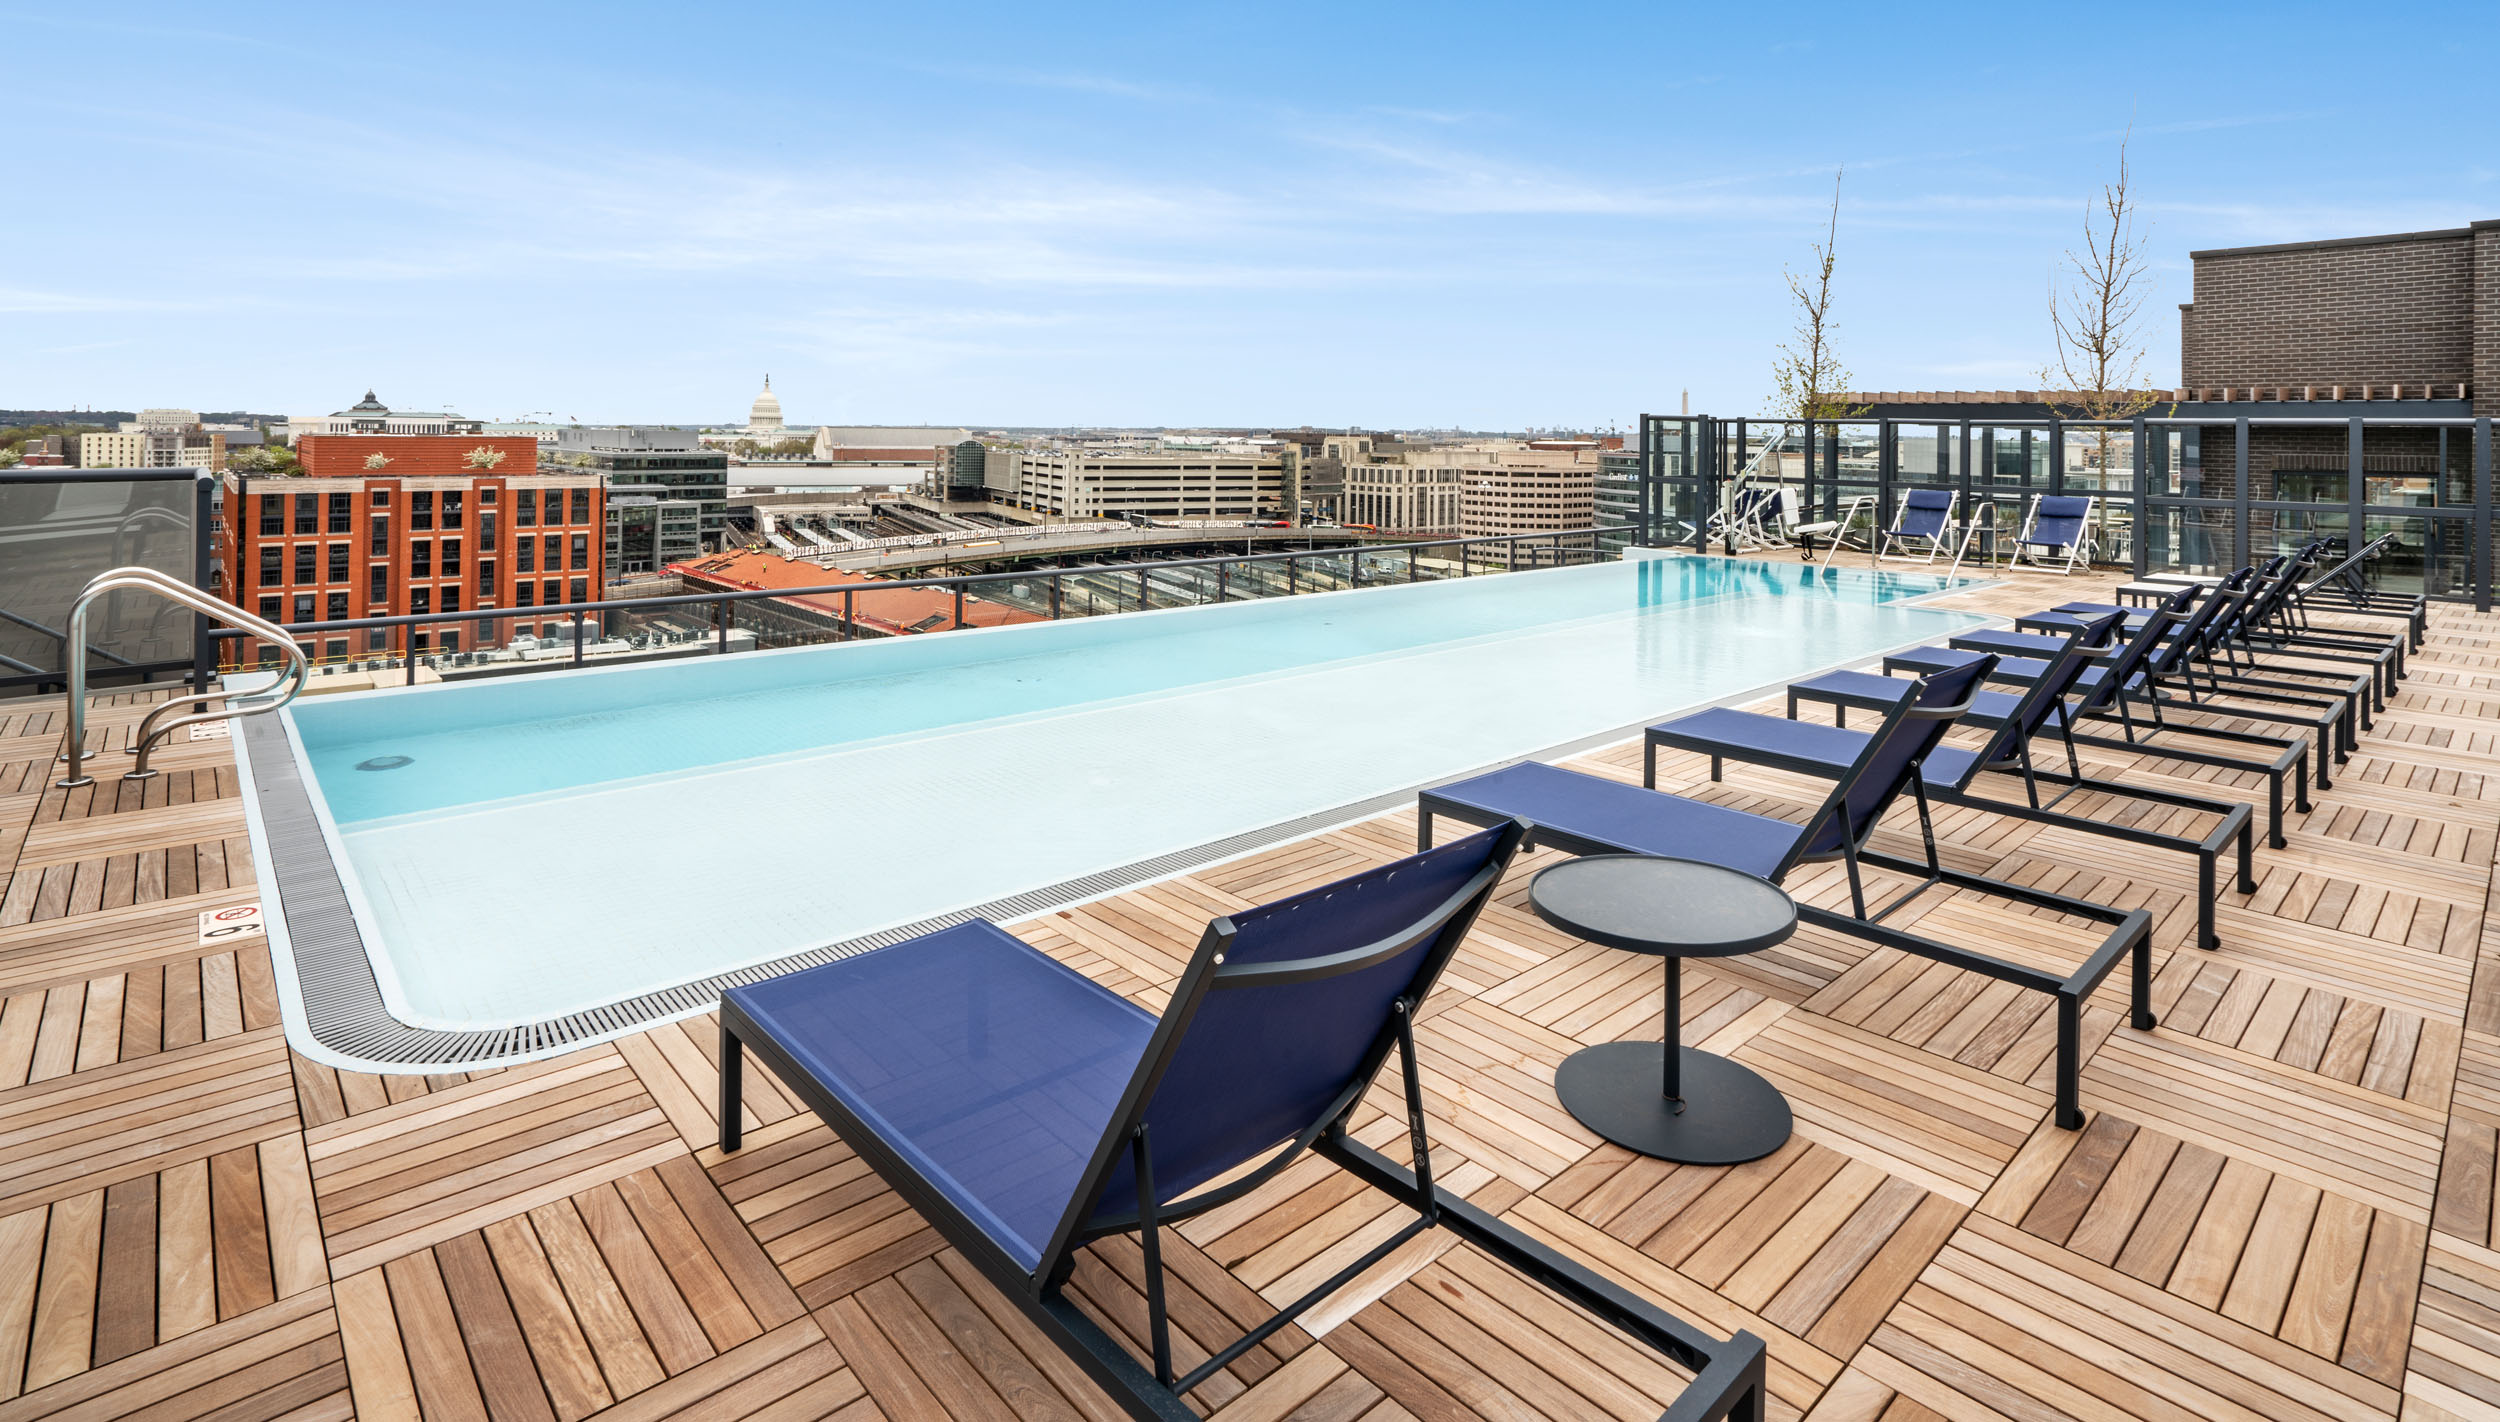 Rooftop at Union Place with infinity pool and views of the DC skyline